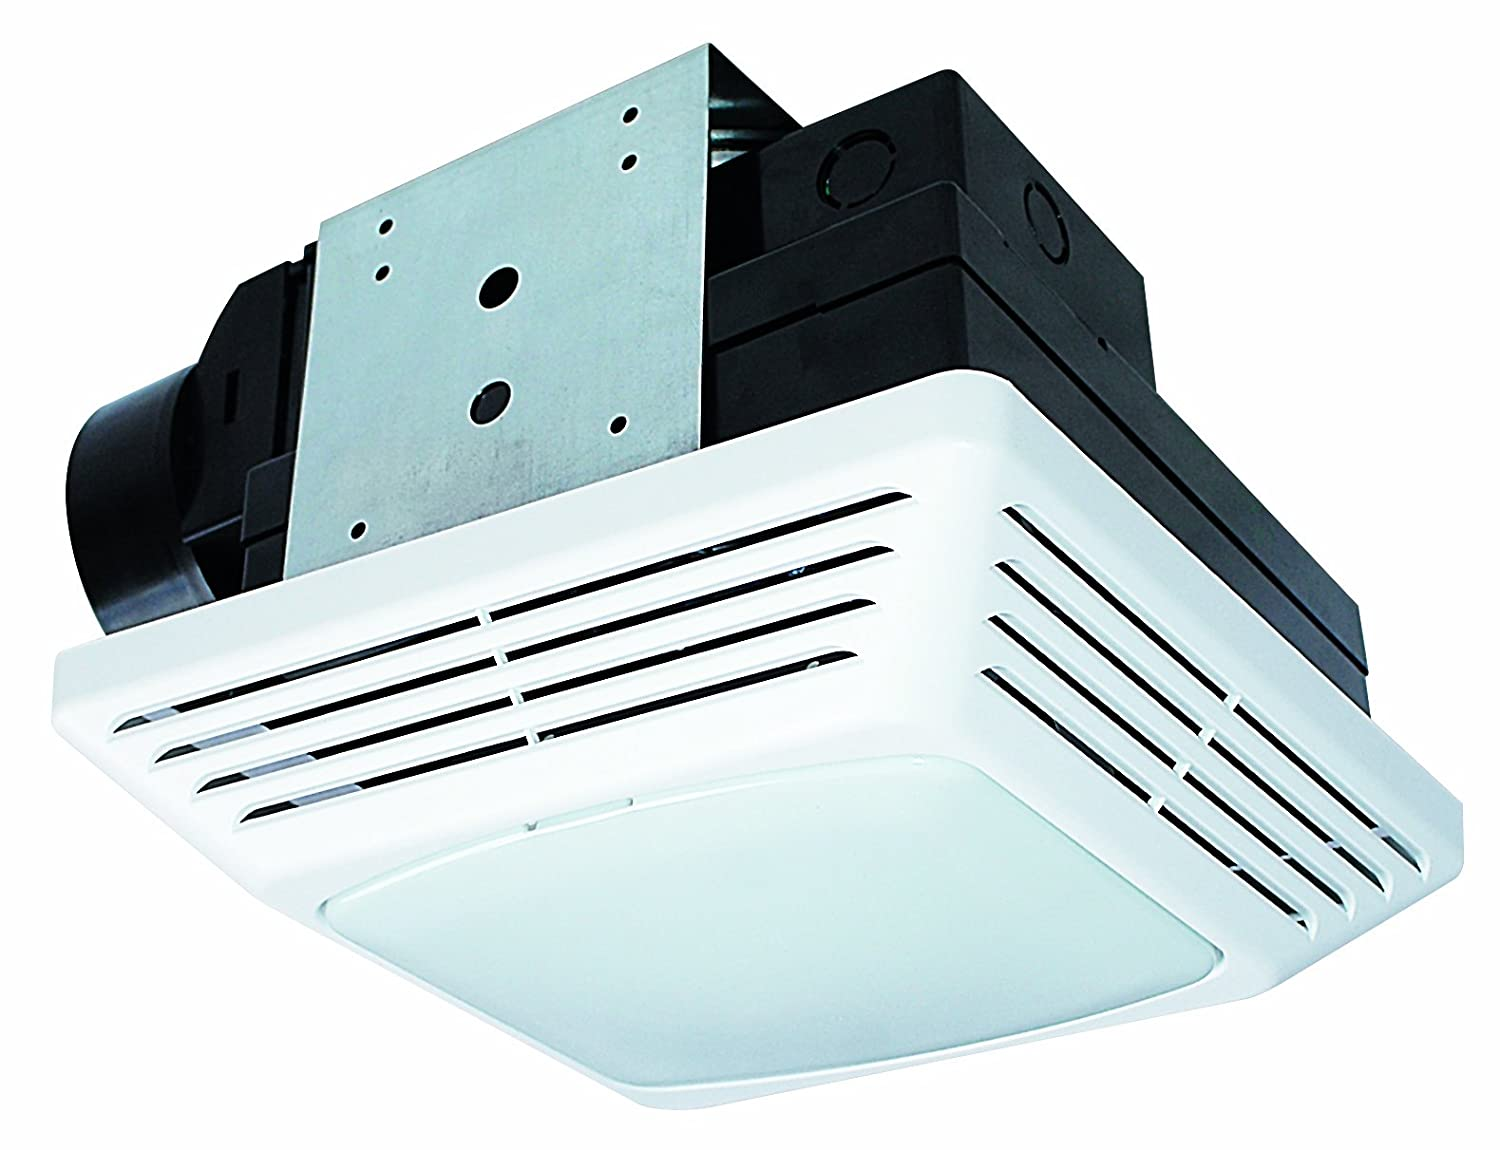 bb1025e872e This dual feature fan and light combination is perfect for rooms from 65-85  square feet and is Energy Star qualified to help save you money.